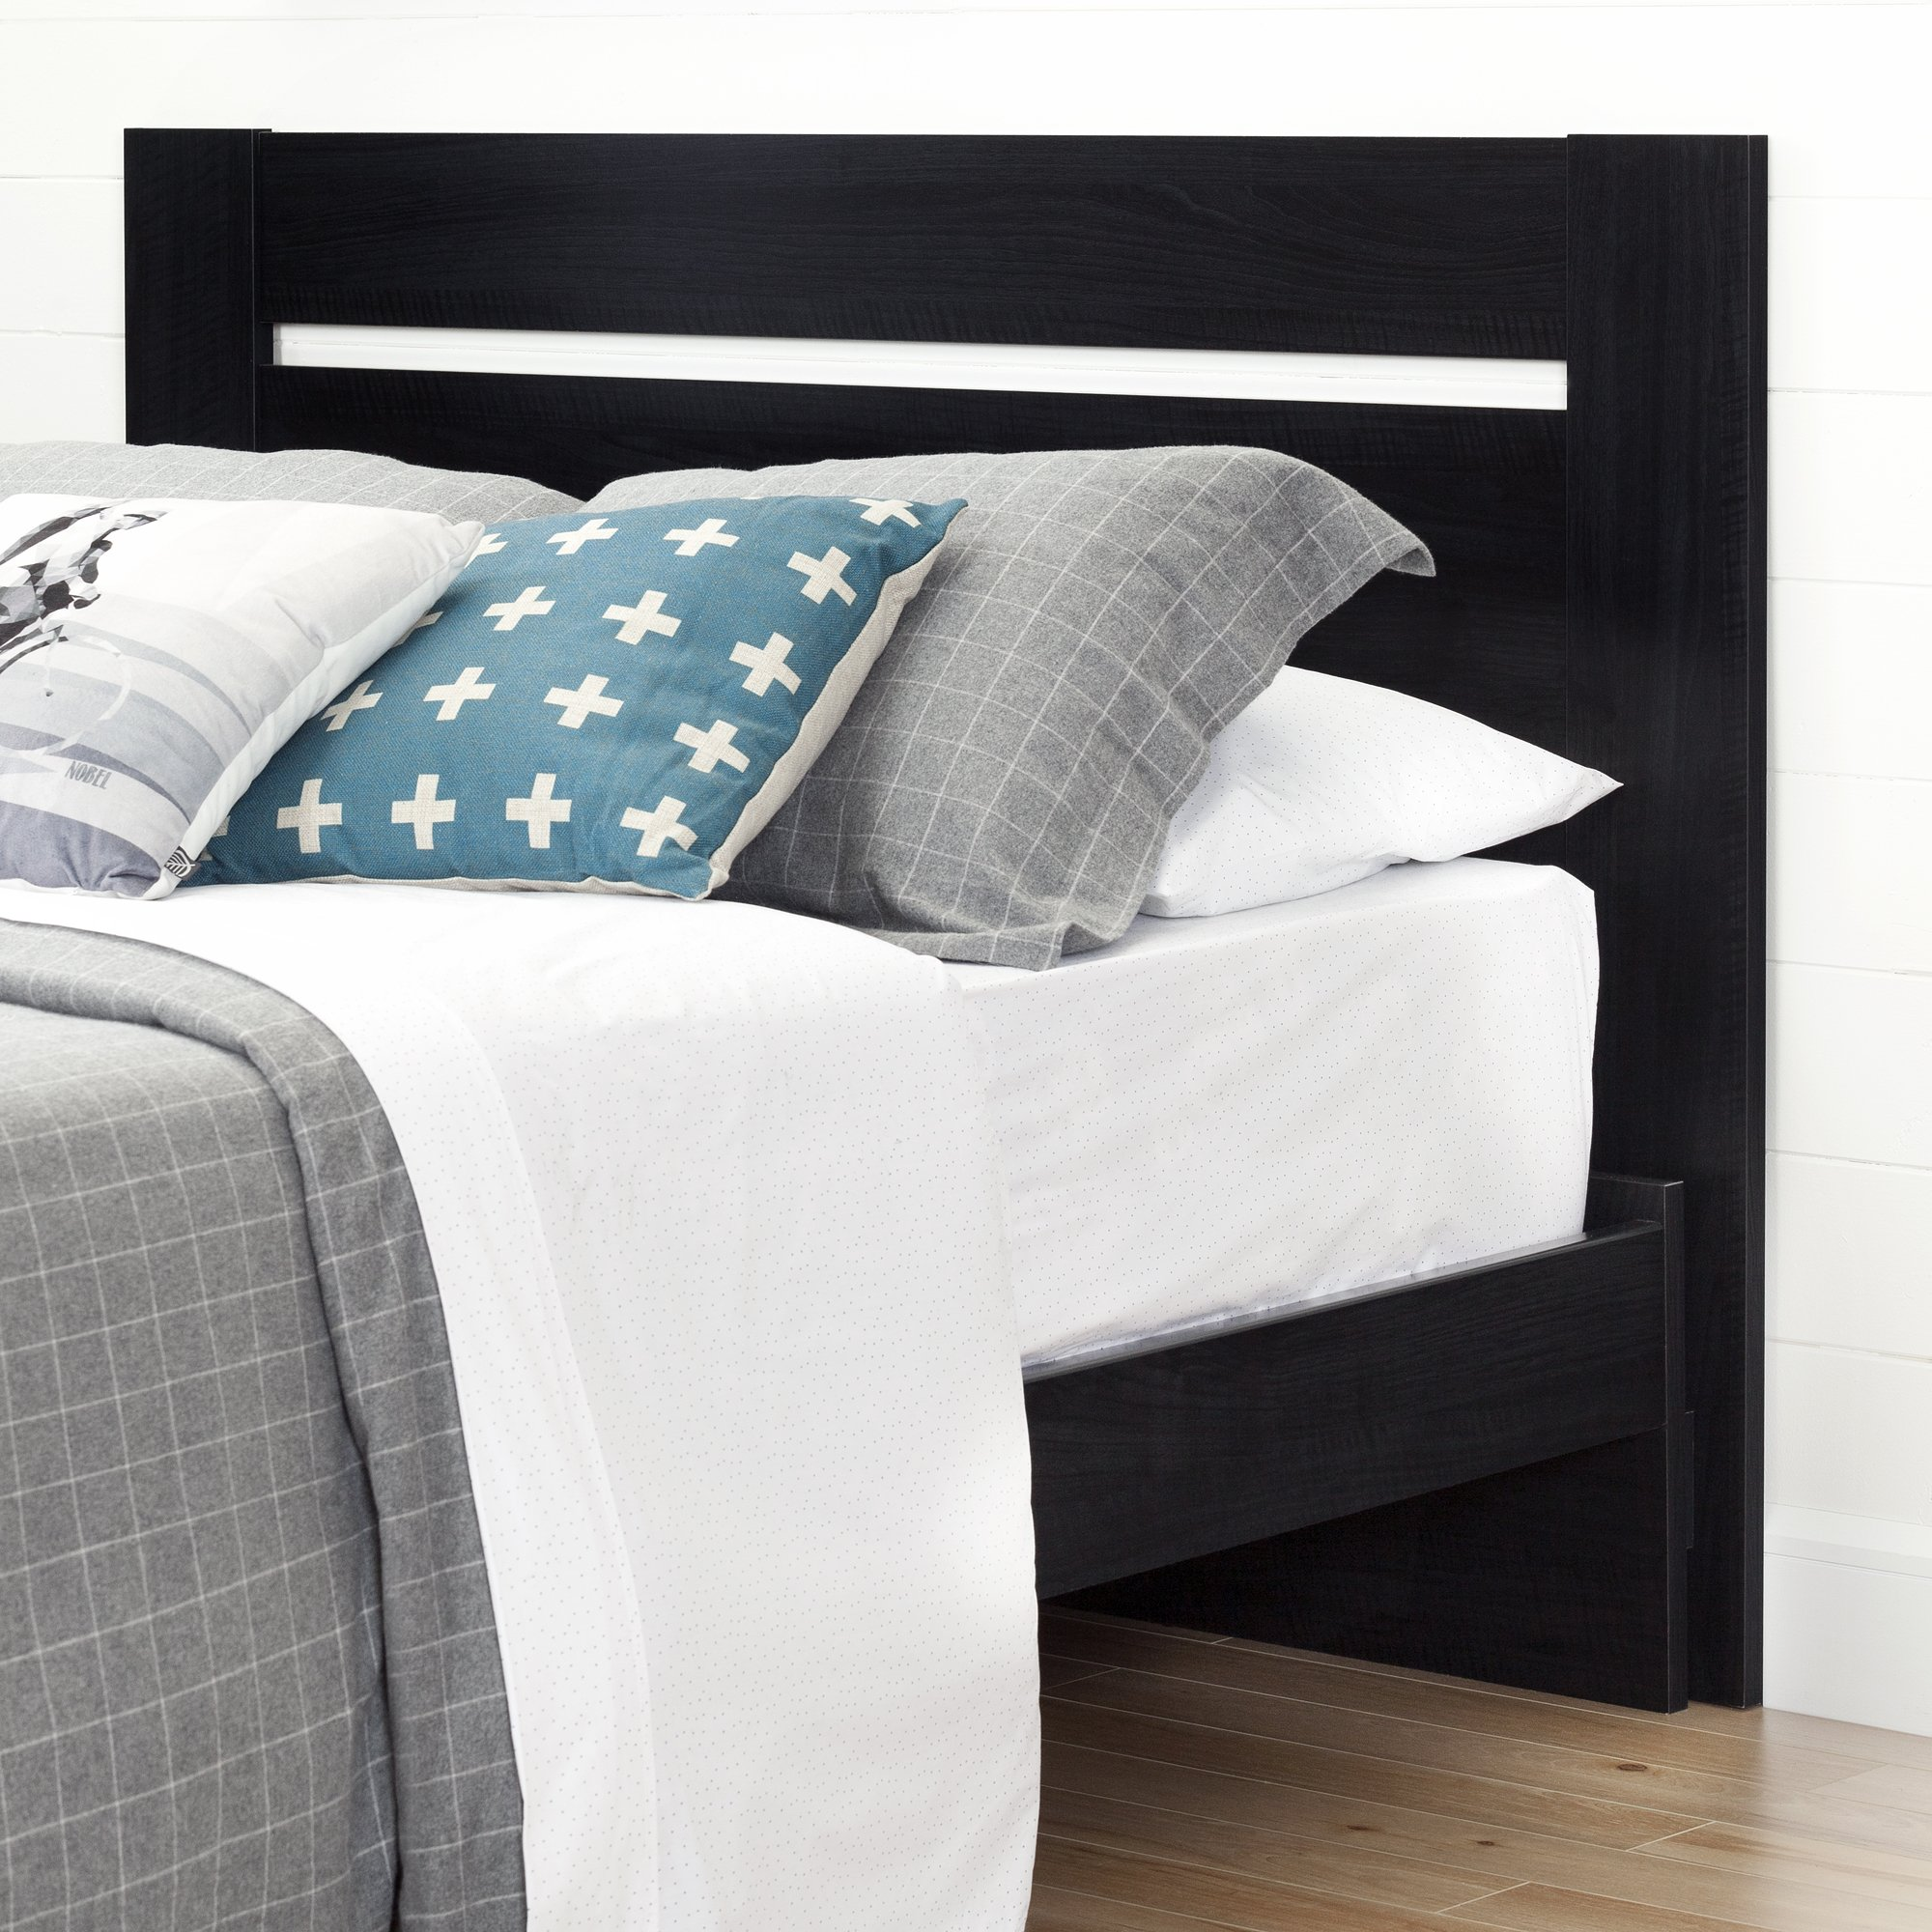 South Shore Reevo Full/Queen Headboard (54/60''), Black Onyx by South Shore (Image #2)